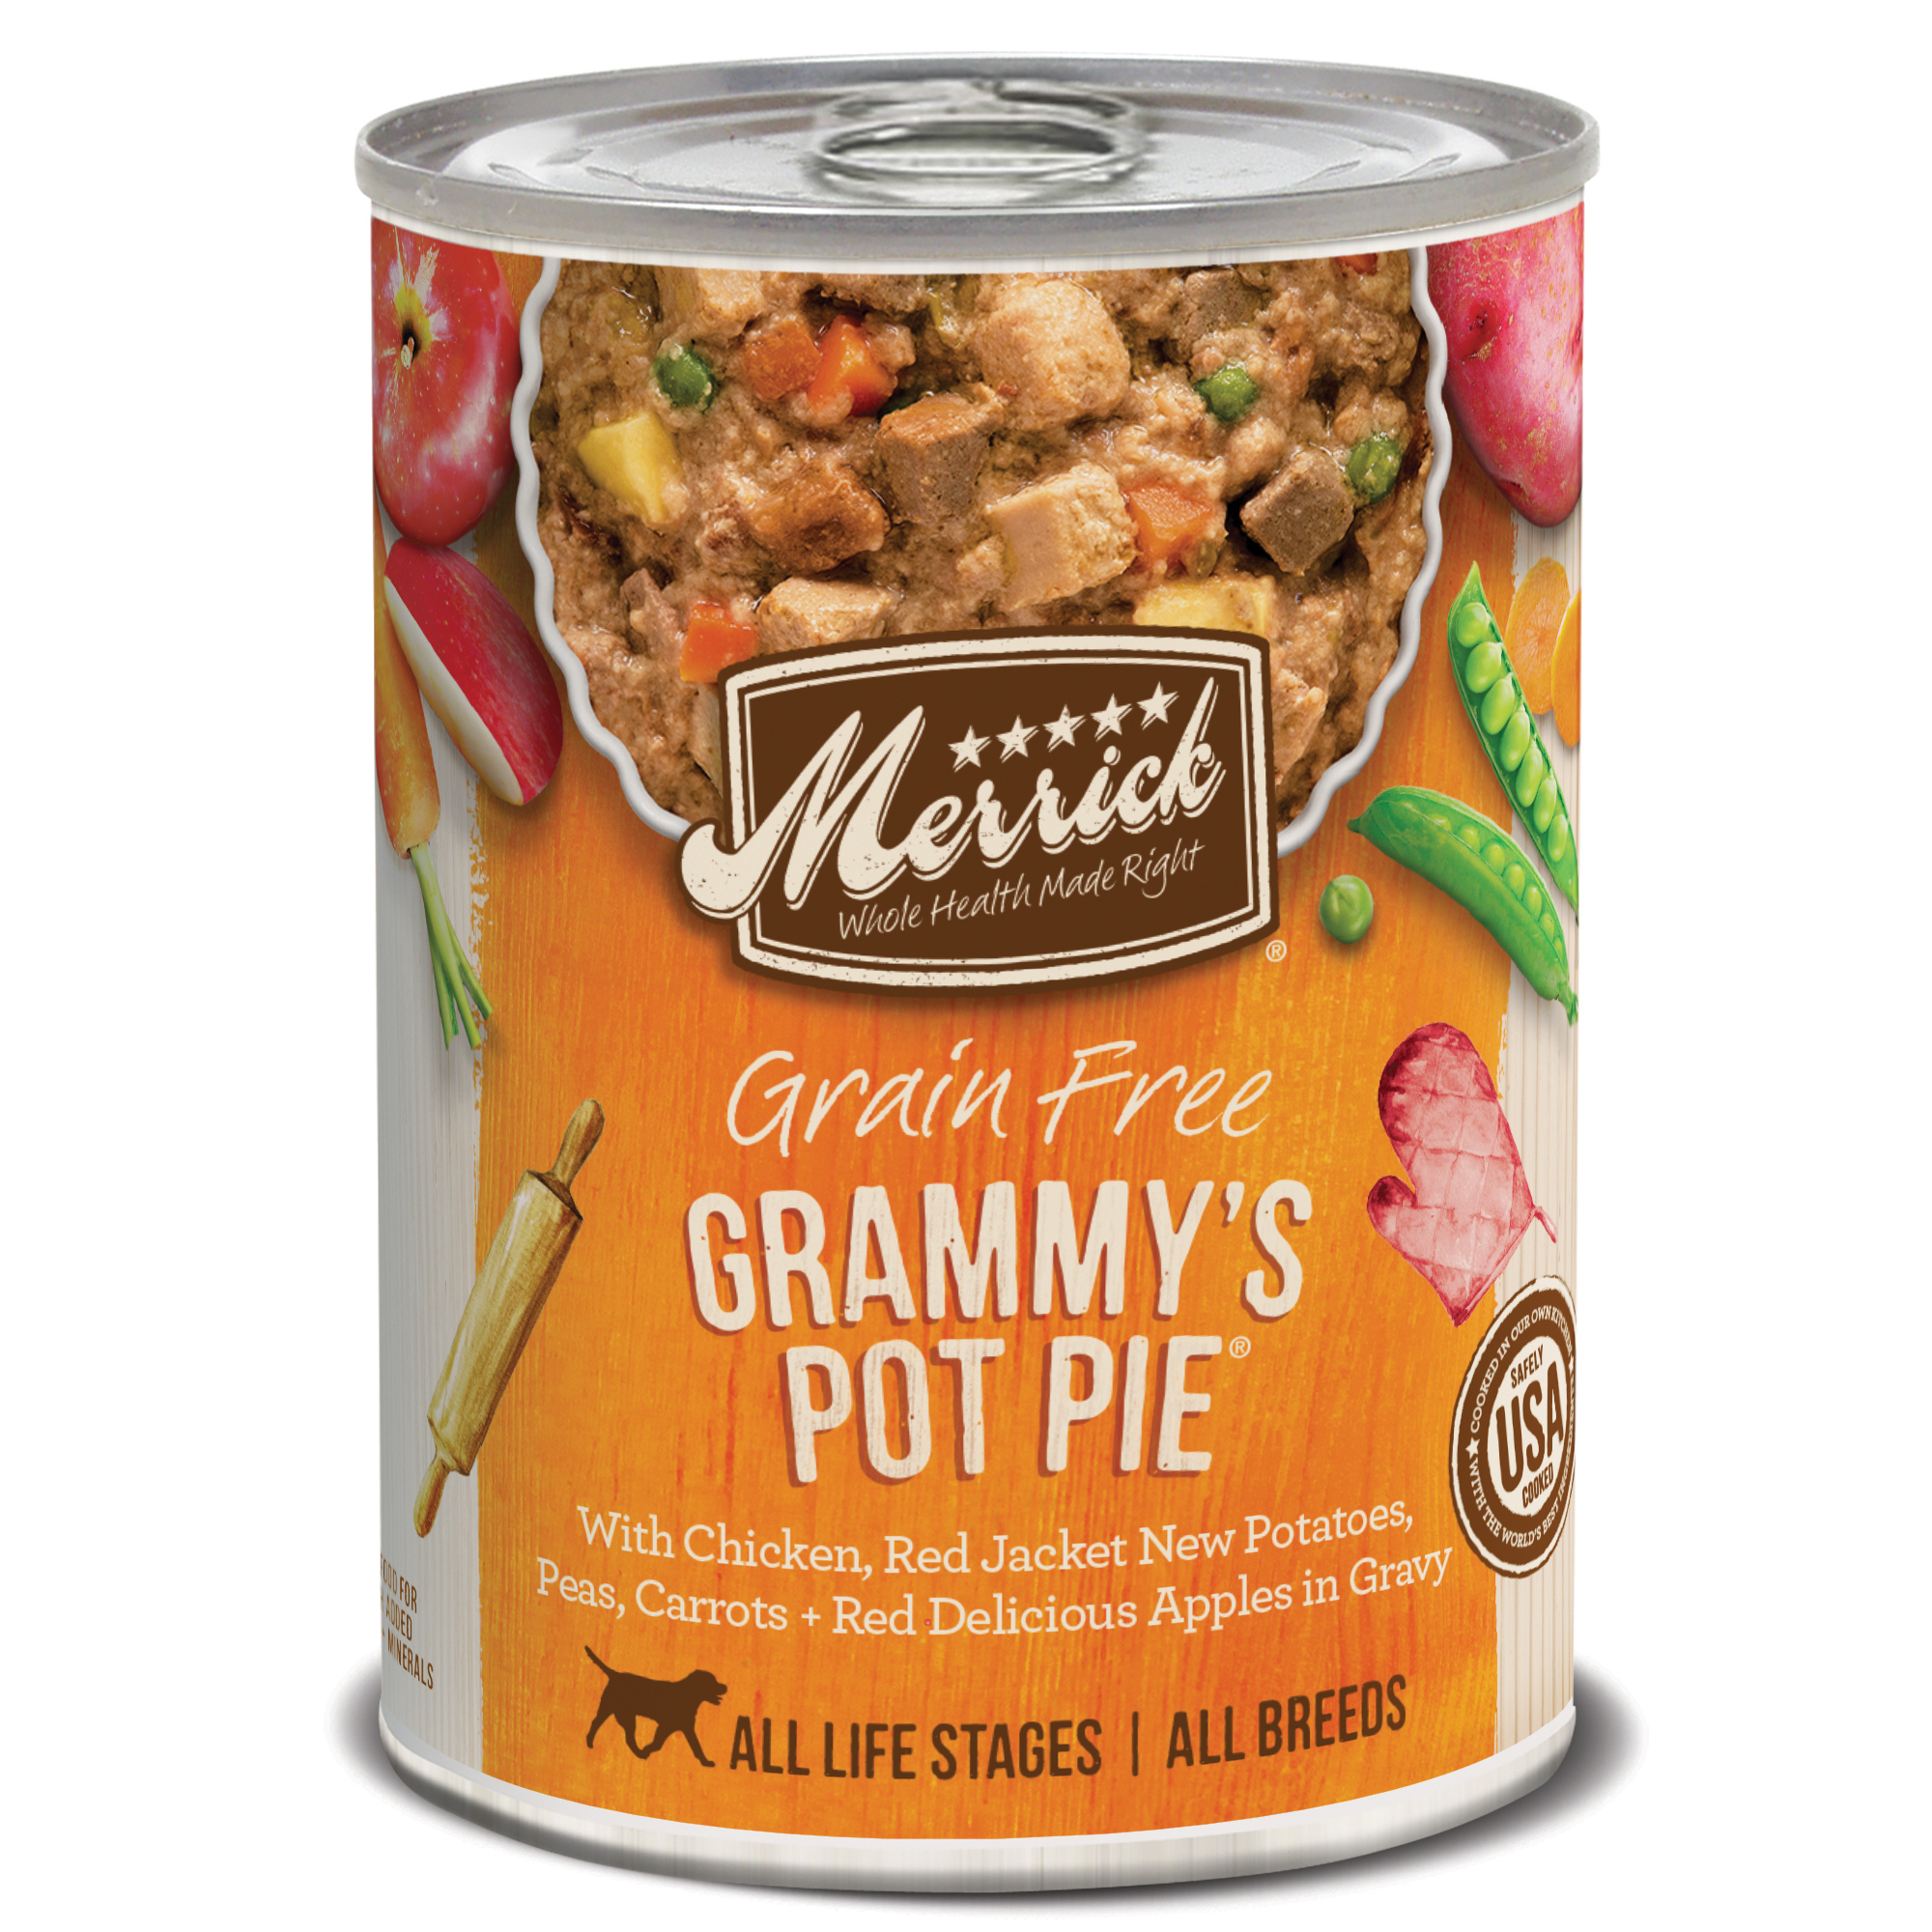 Merrick Grain-Free Grammy's Pot Pie Recipe Canned Dog Food Image